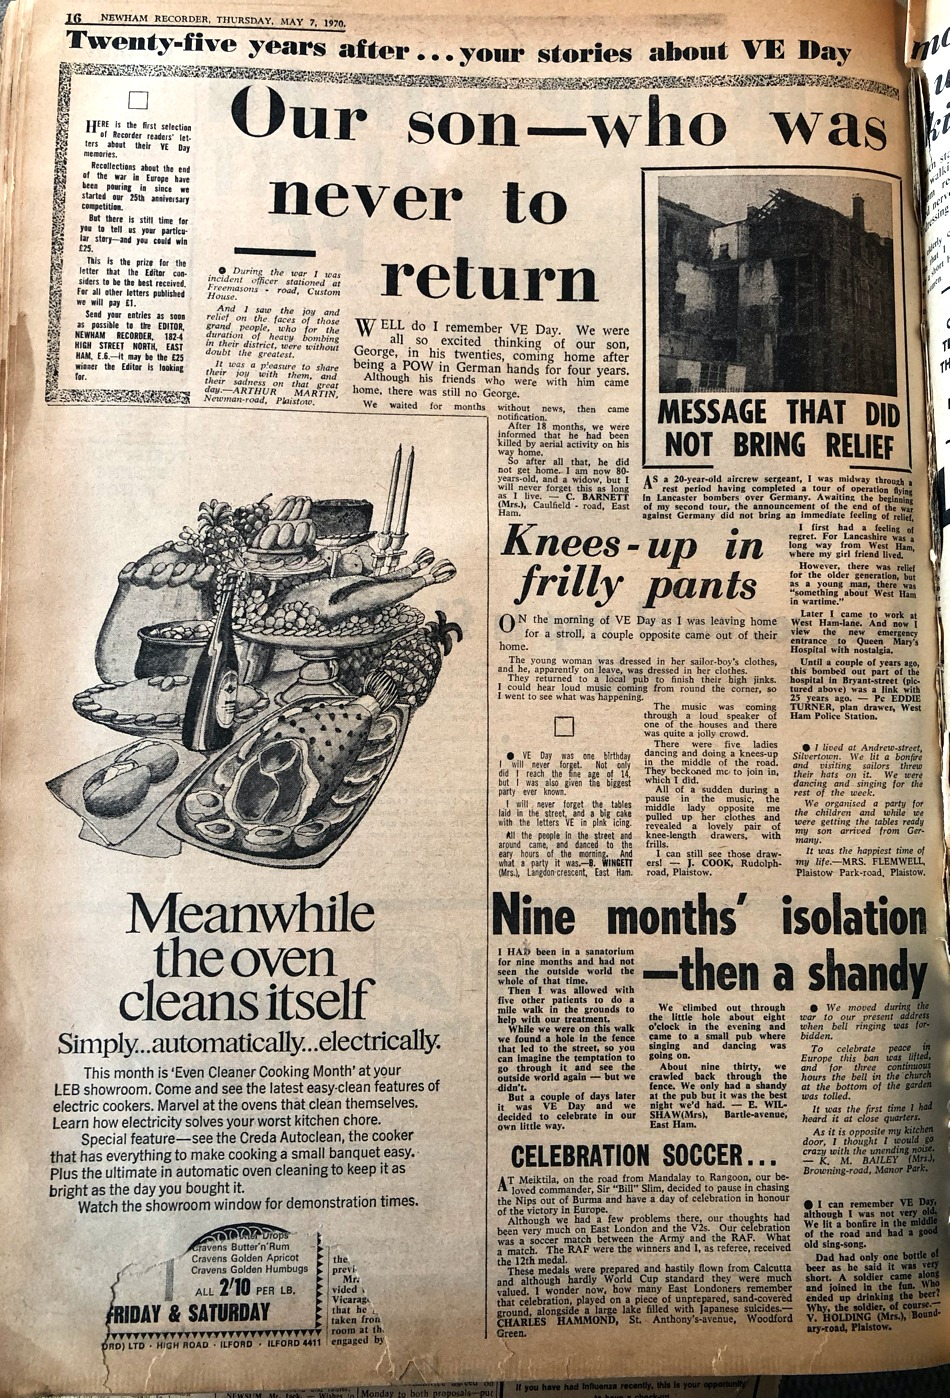 Newspaper article clipping - 7 May 1970